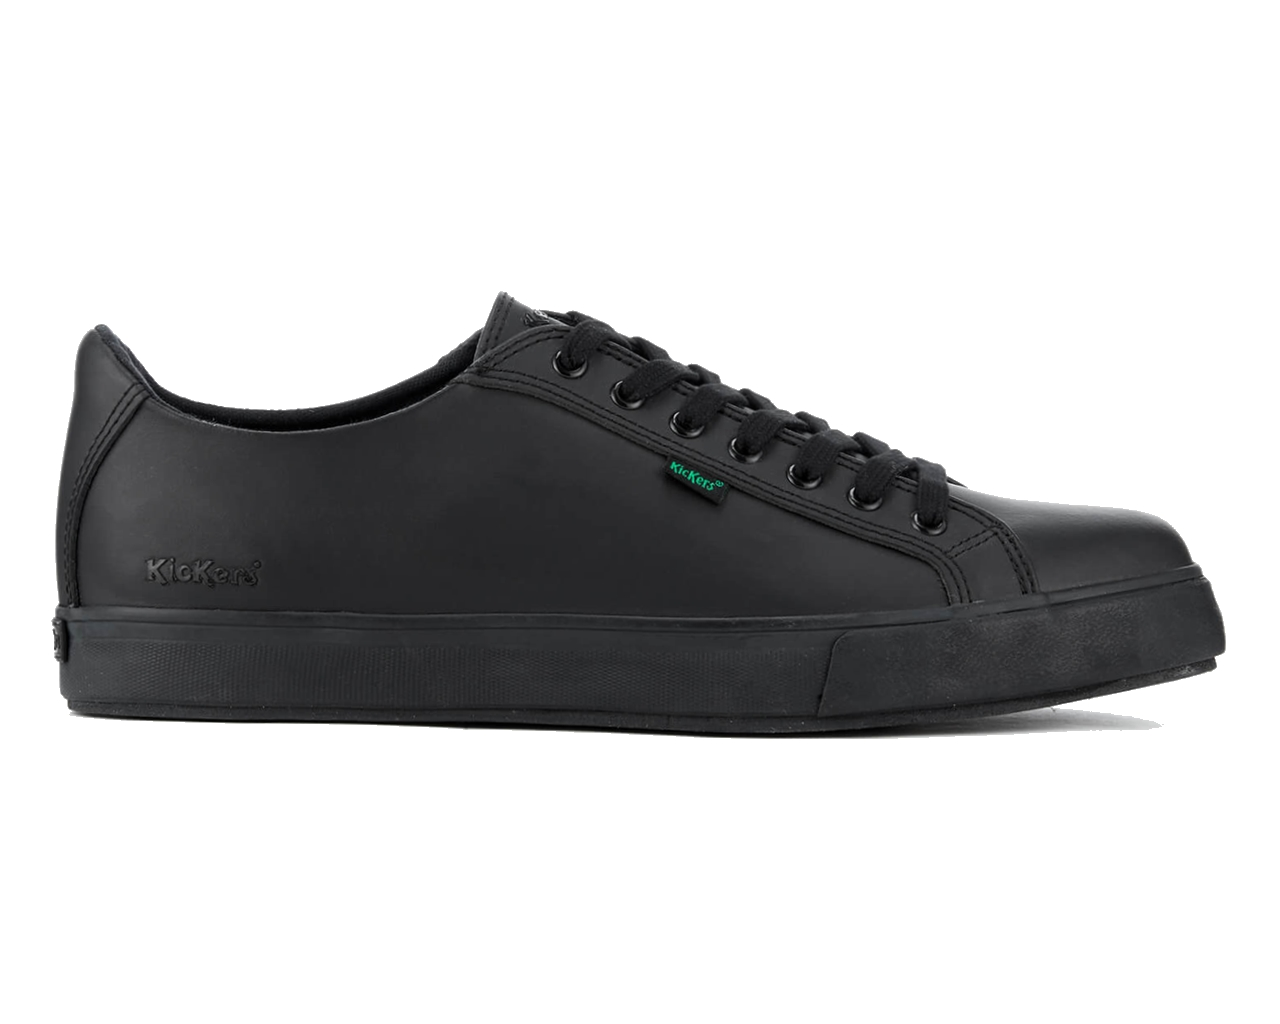 Kickers Reasan lace Leather AM 112799 Mens Shoes Black School Work Shoe